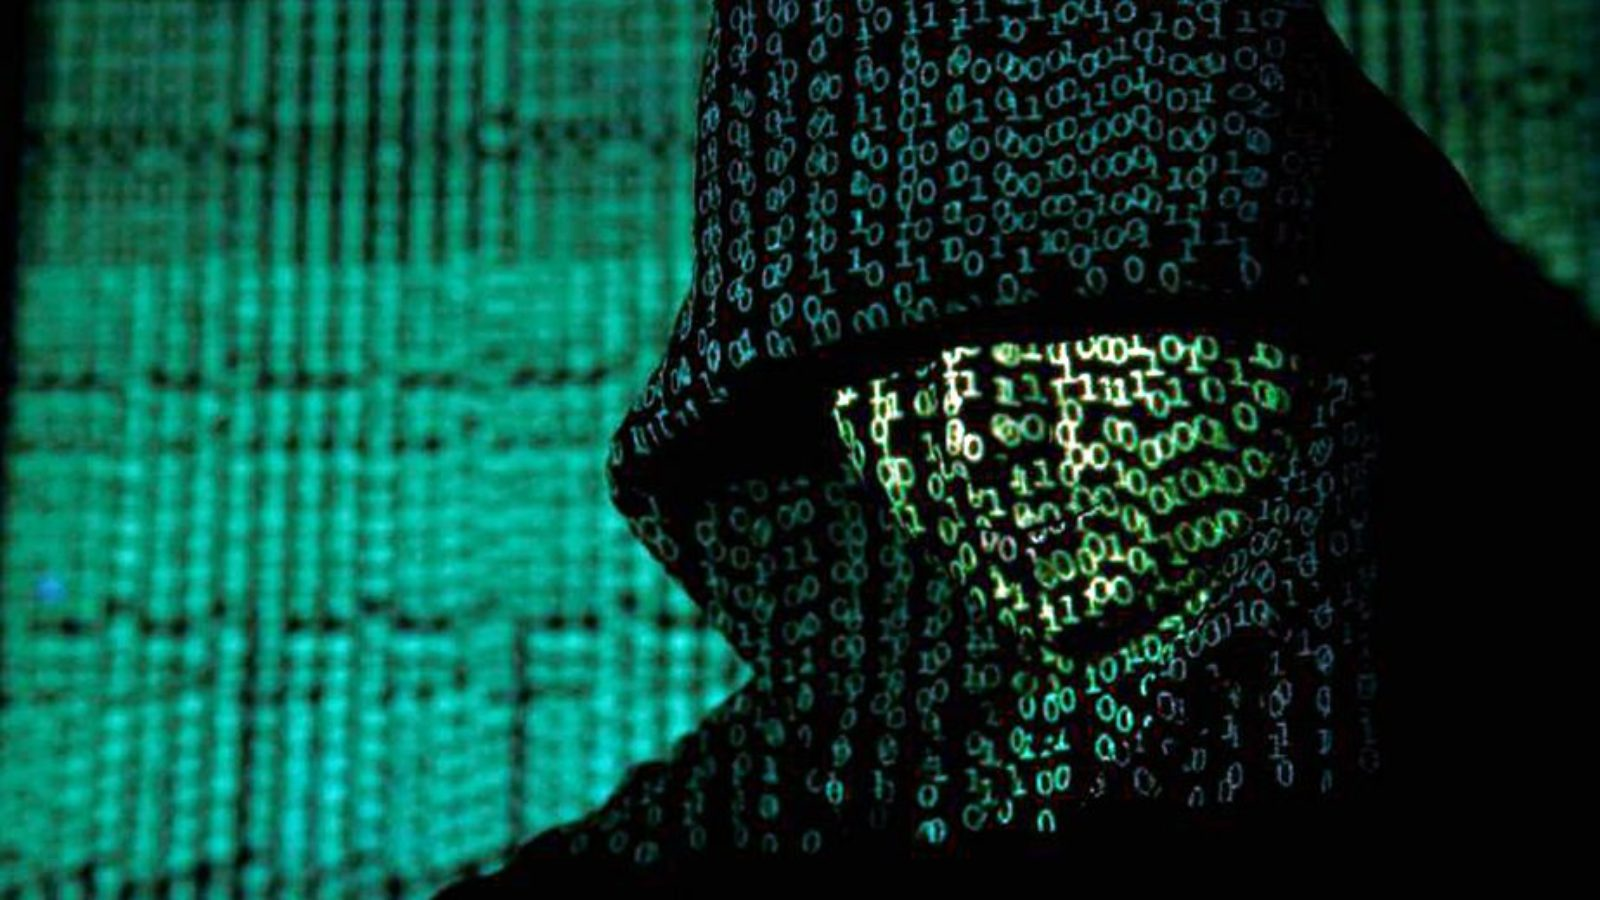 Green lines of code are projected on the face of a man earing a dark hoodie